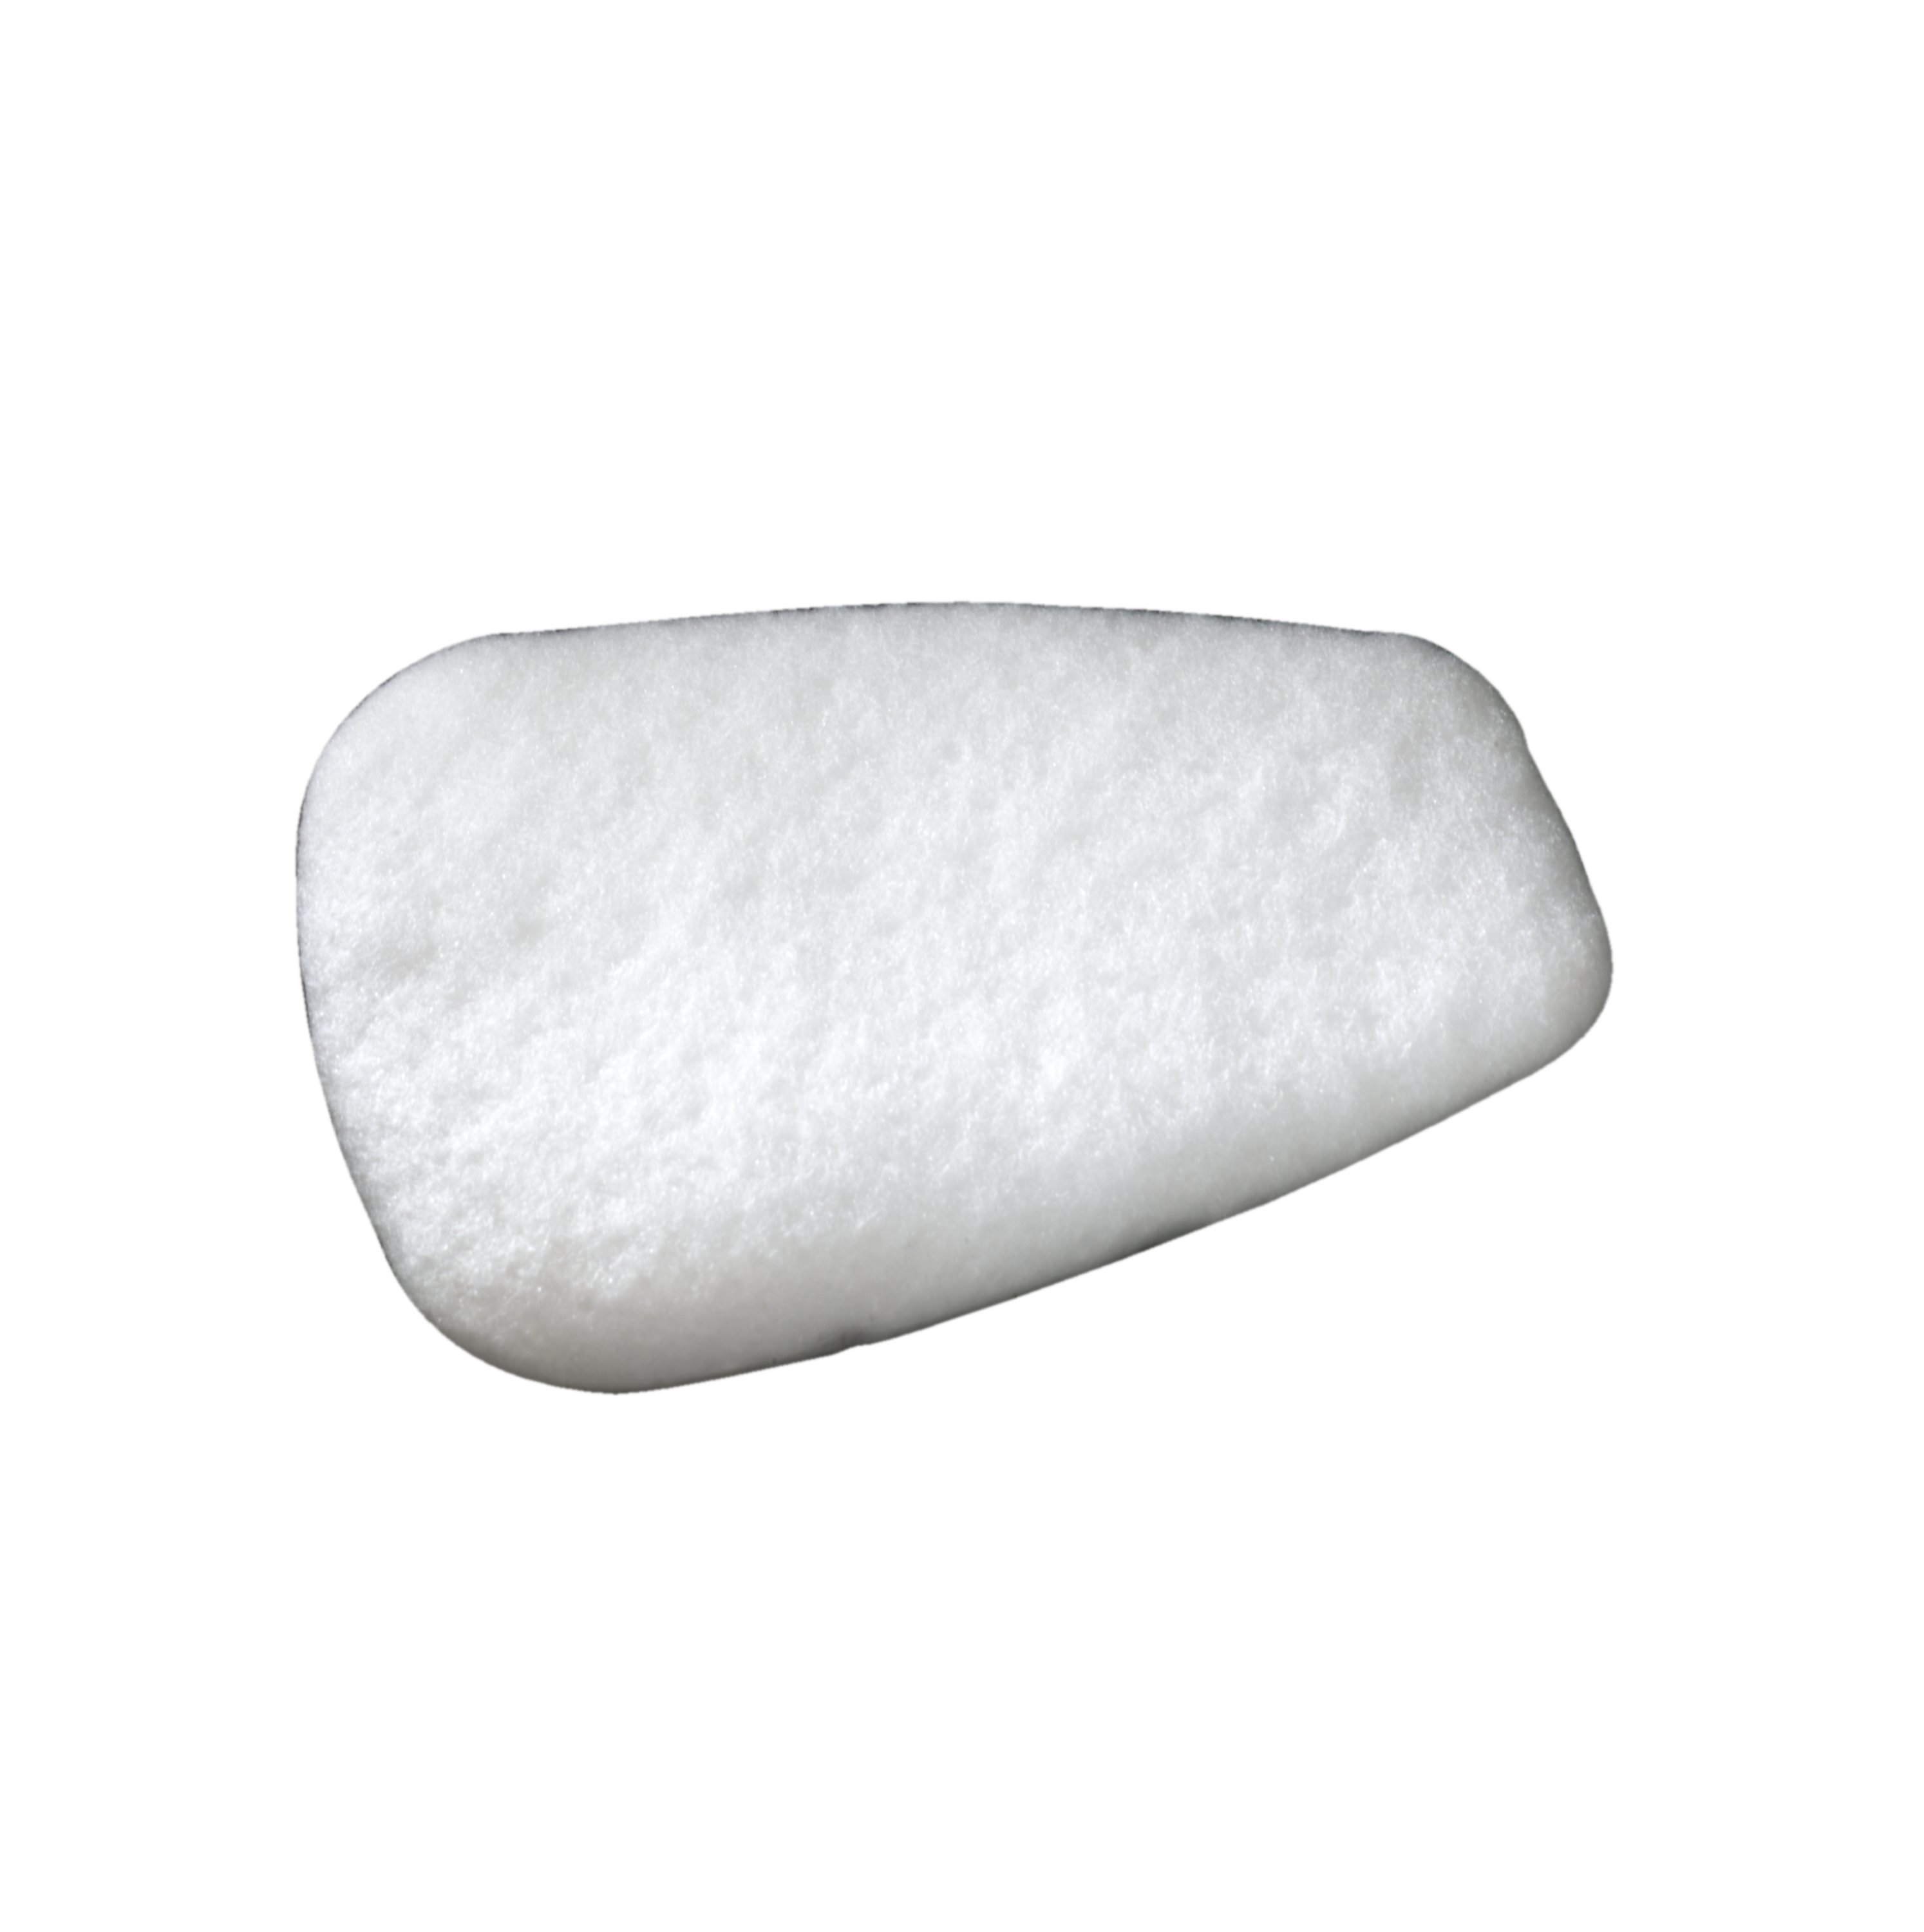 3M™ 051138-46464 Particulate Filter, For Use With 3M™ 5000 Series Respirators, 6000 Series Cartridges, 603 Filter Adapter and 501 Filter Retainer, N95 Filter Class, Bayonet Connection, White